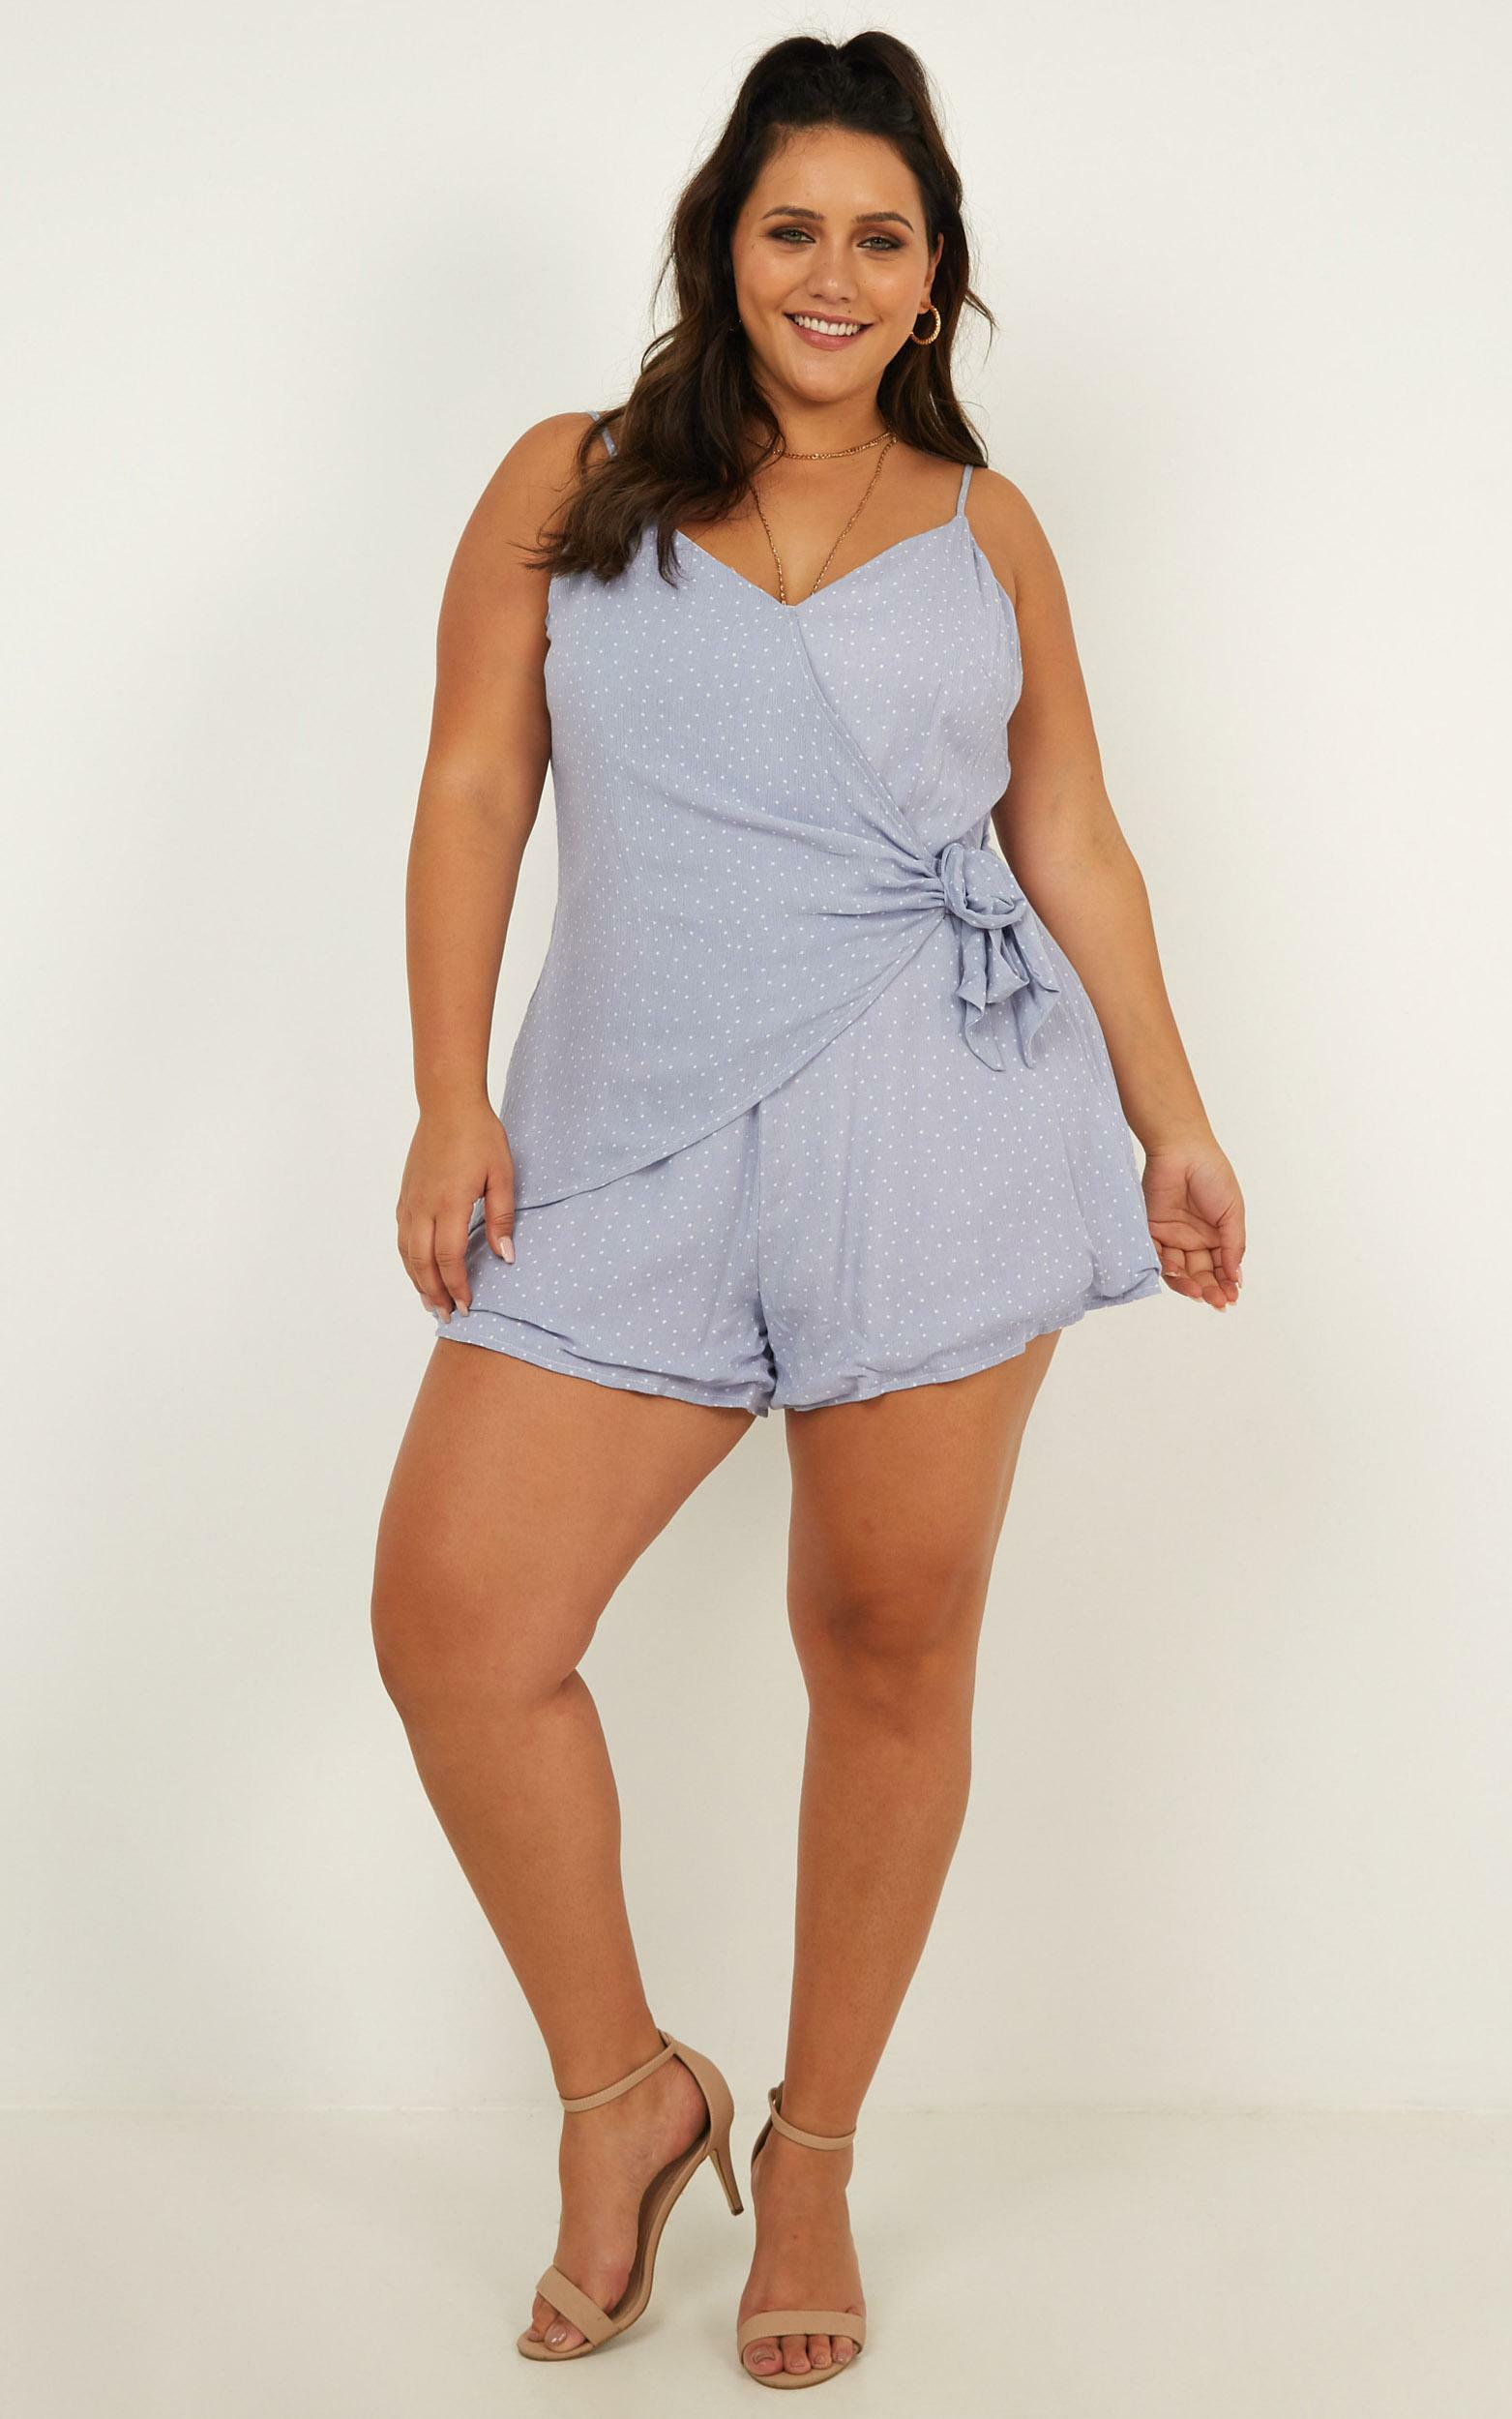 Before The Rising Sun Playsuit in light blue spot , Blue, hi-res image number null